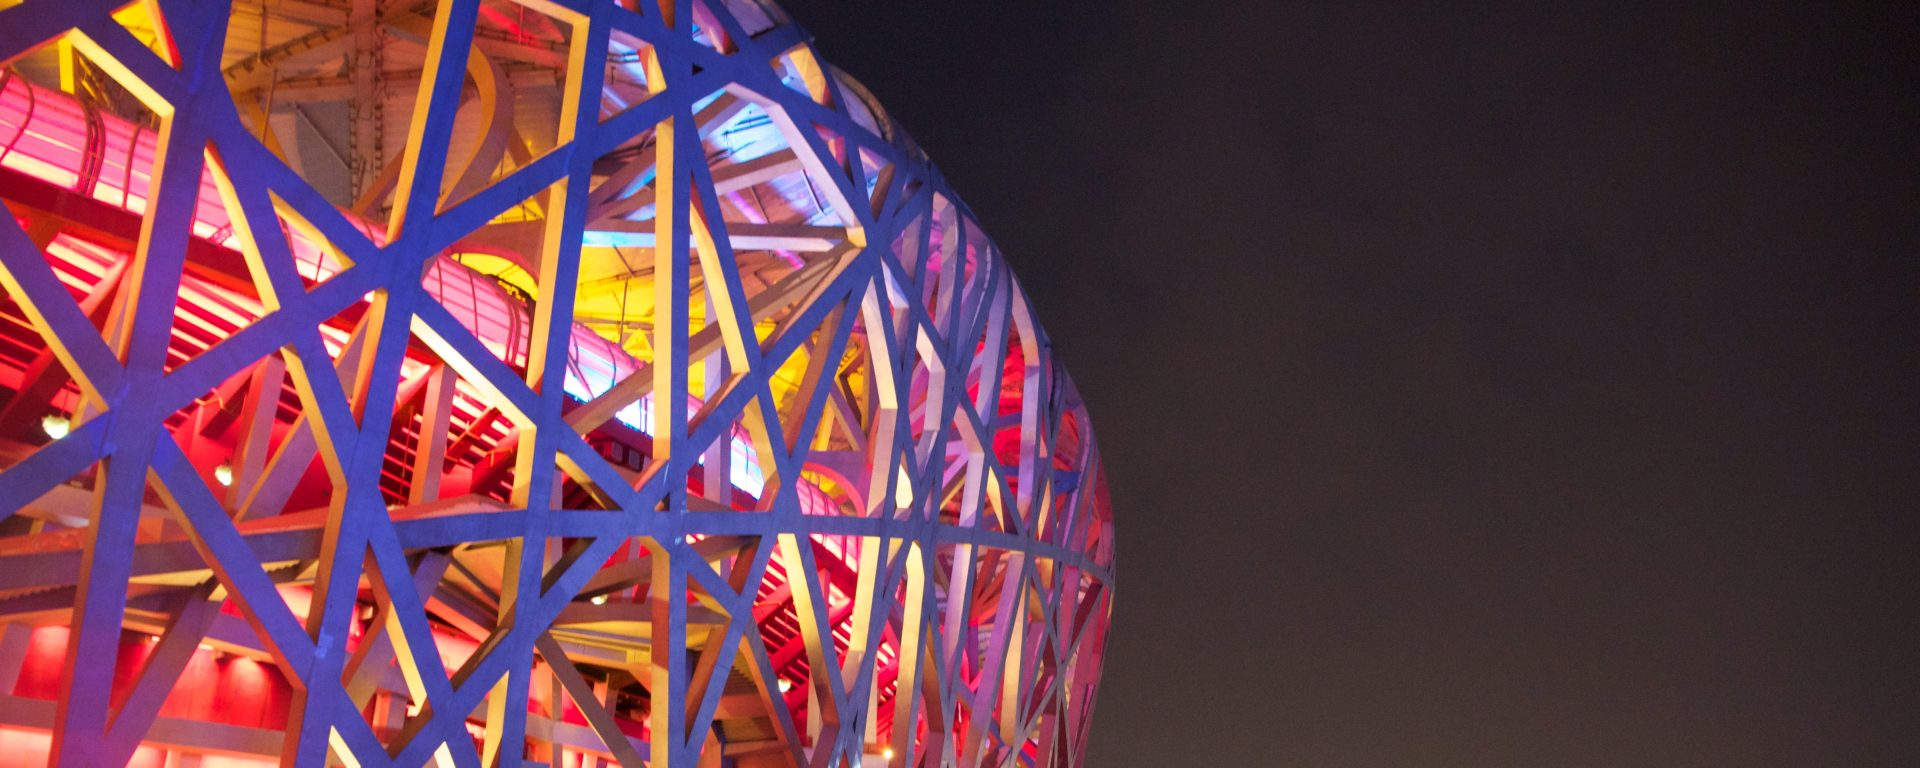 Photo of Beijing Olympic site, featuring metalwork in the shape of a web, with pink, orange, and yellow lights.